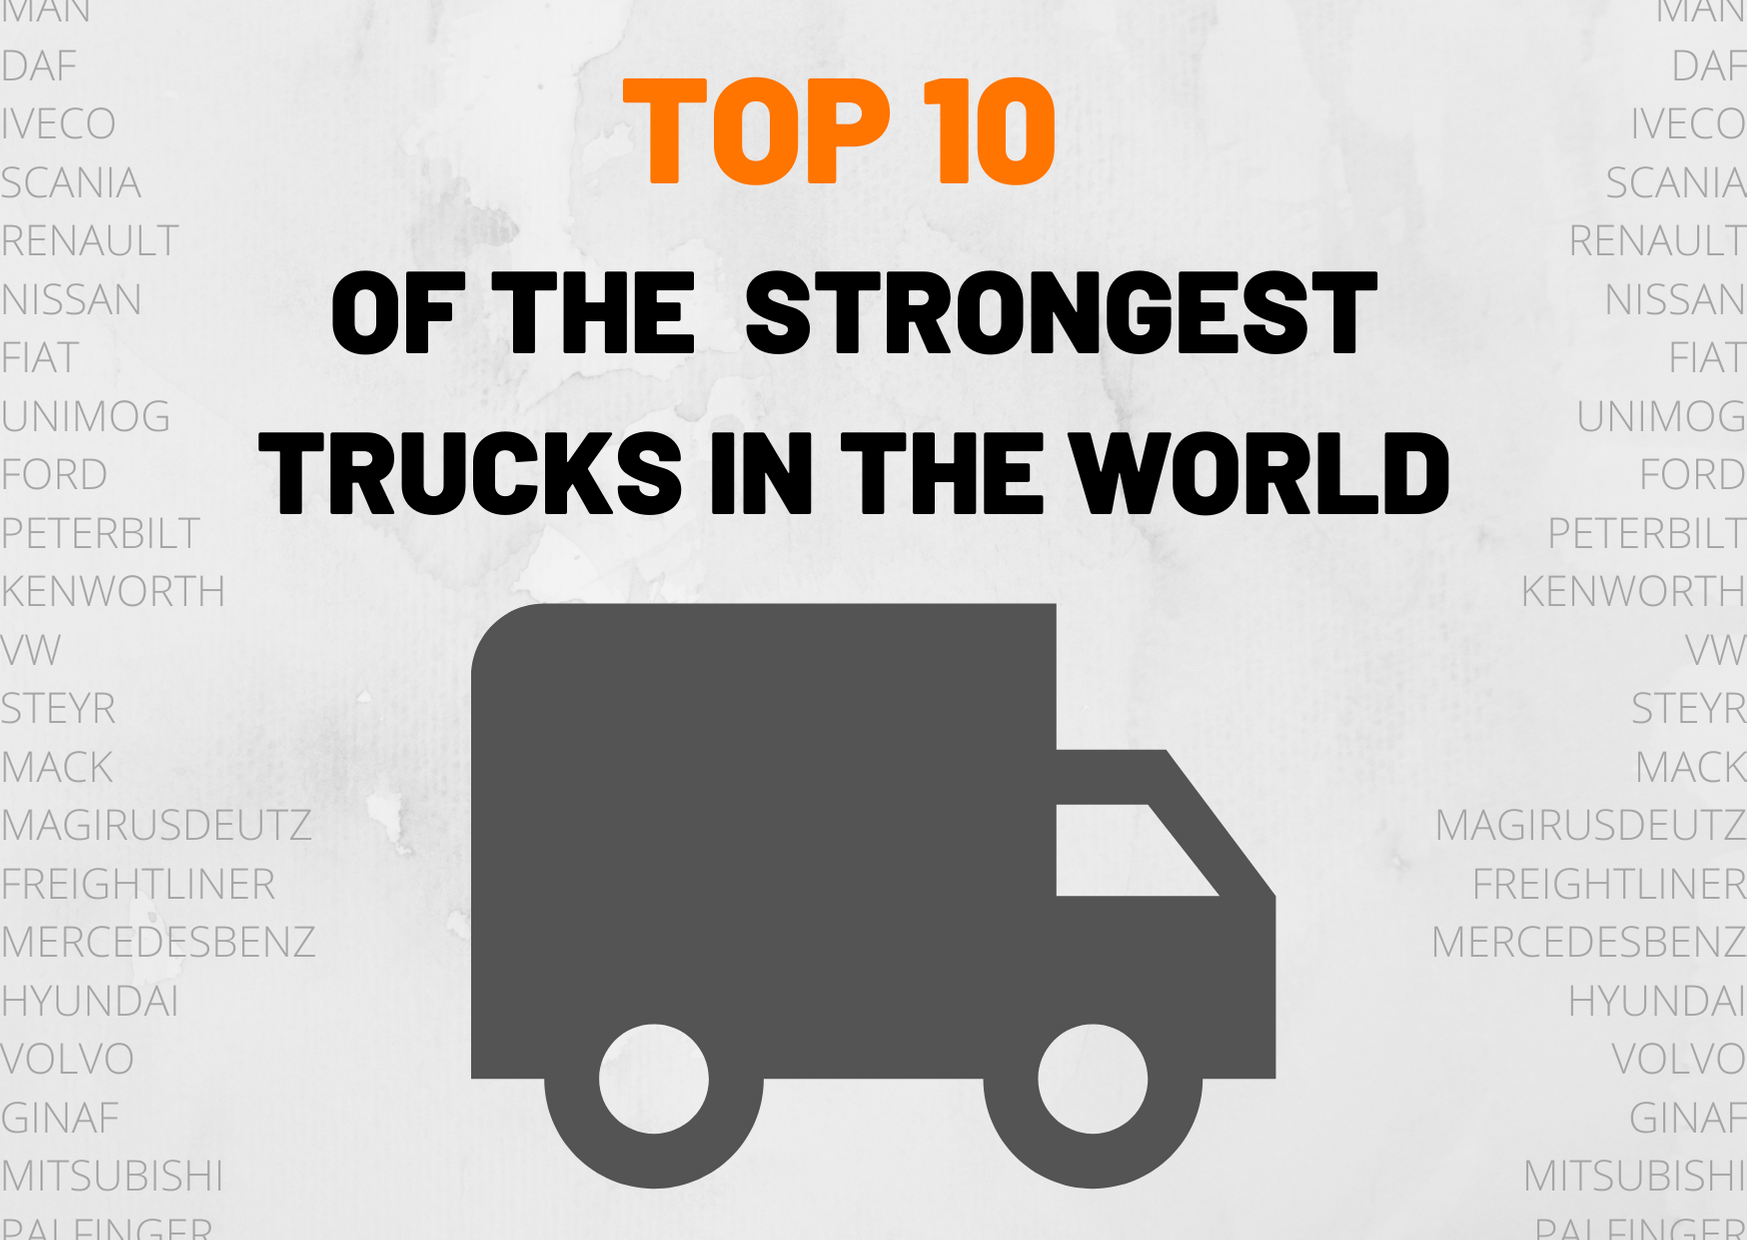 The 10 Most Powerful Trucks In The World Truckscout24